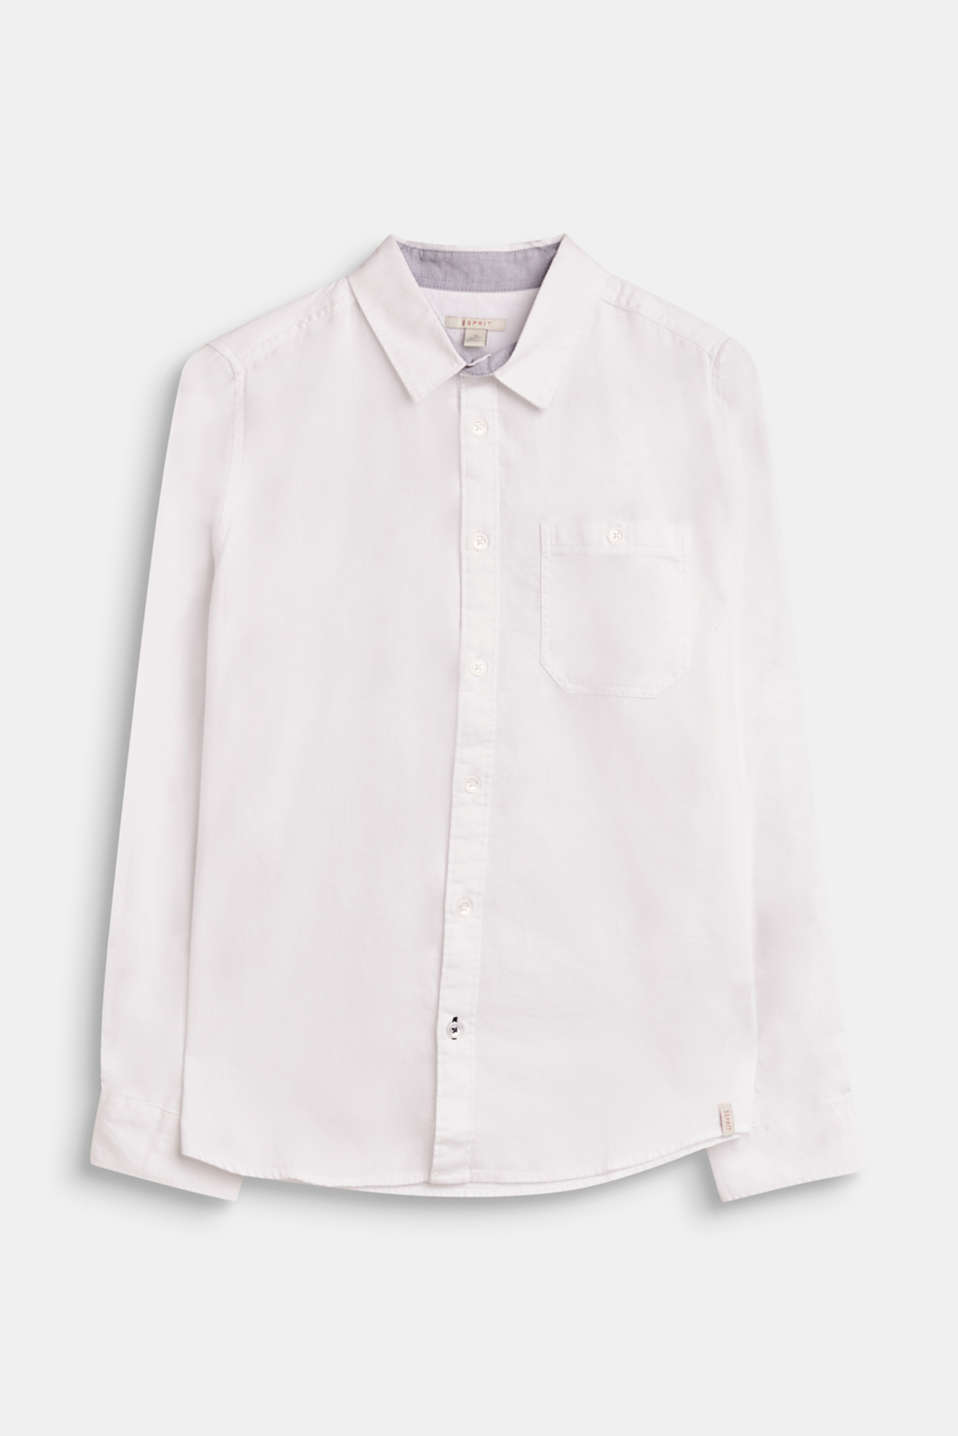 Esprit - 100% cotton textured shirt